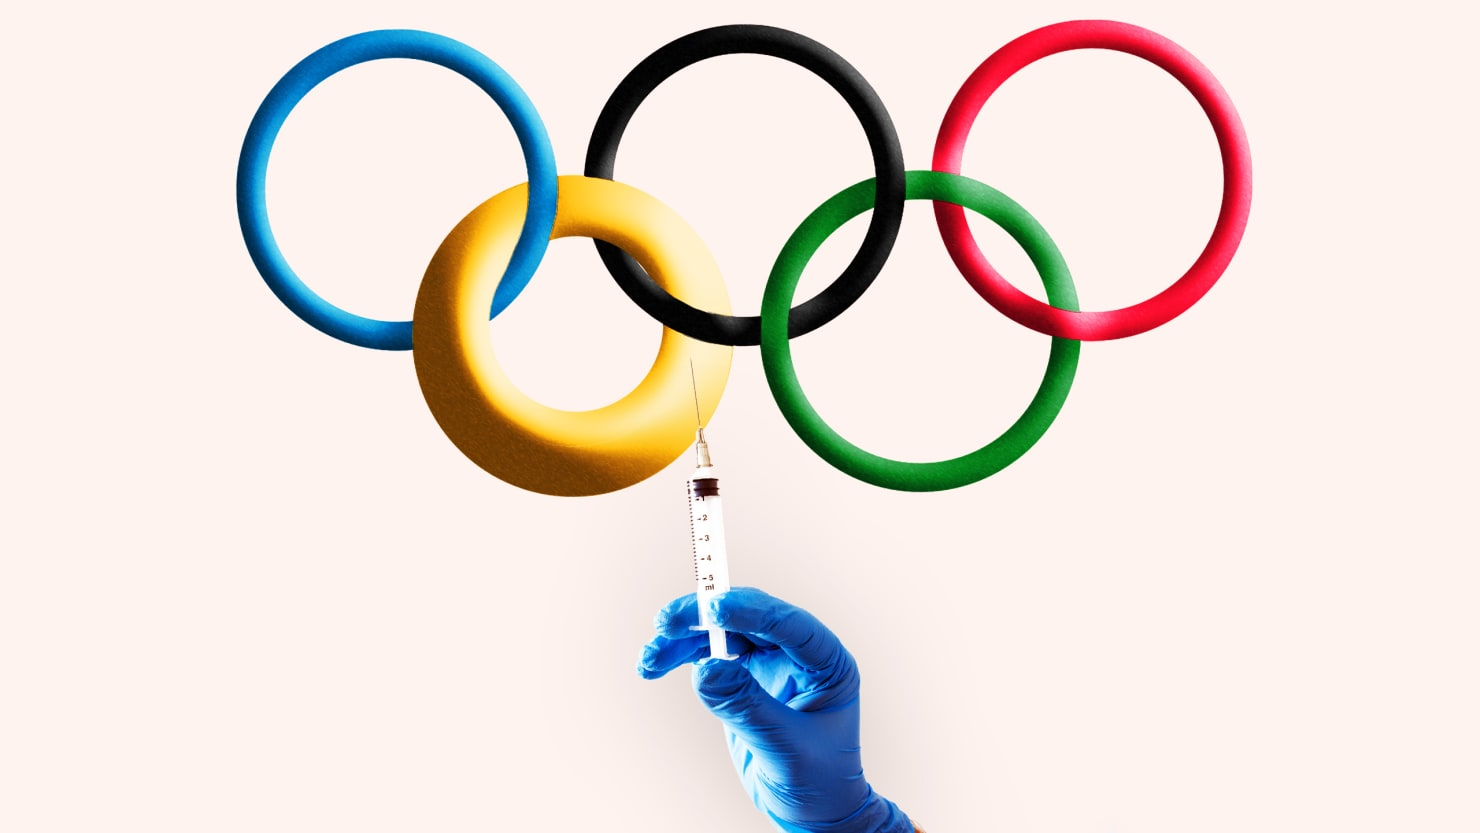 Indian under 17 ahtletes flagged for doping - doping